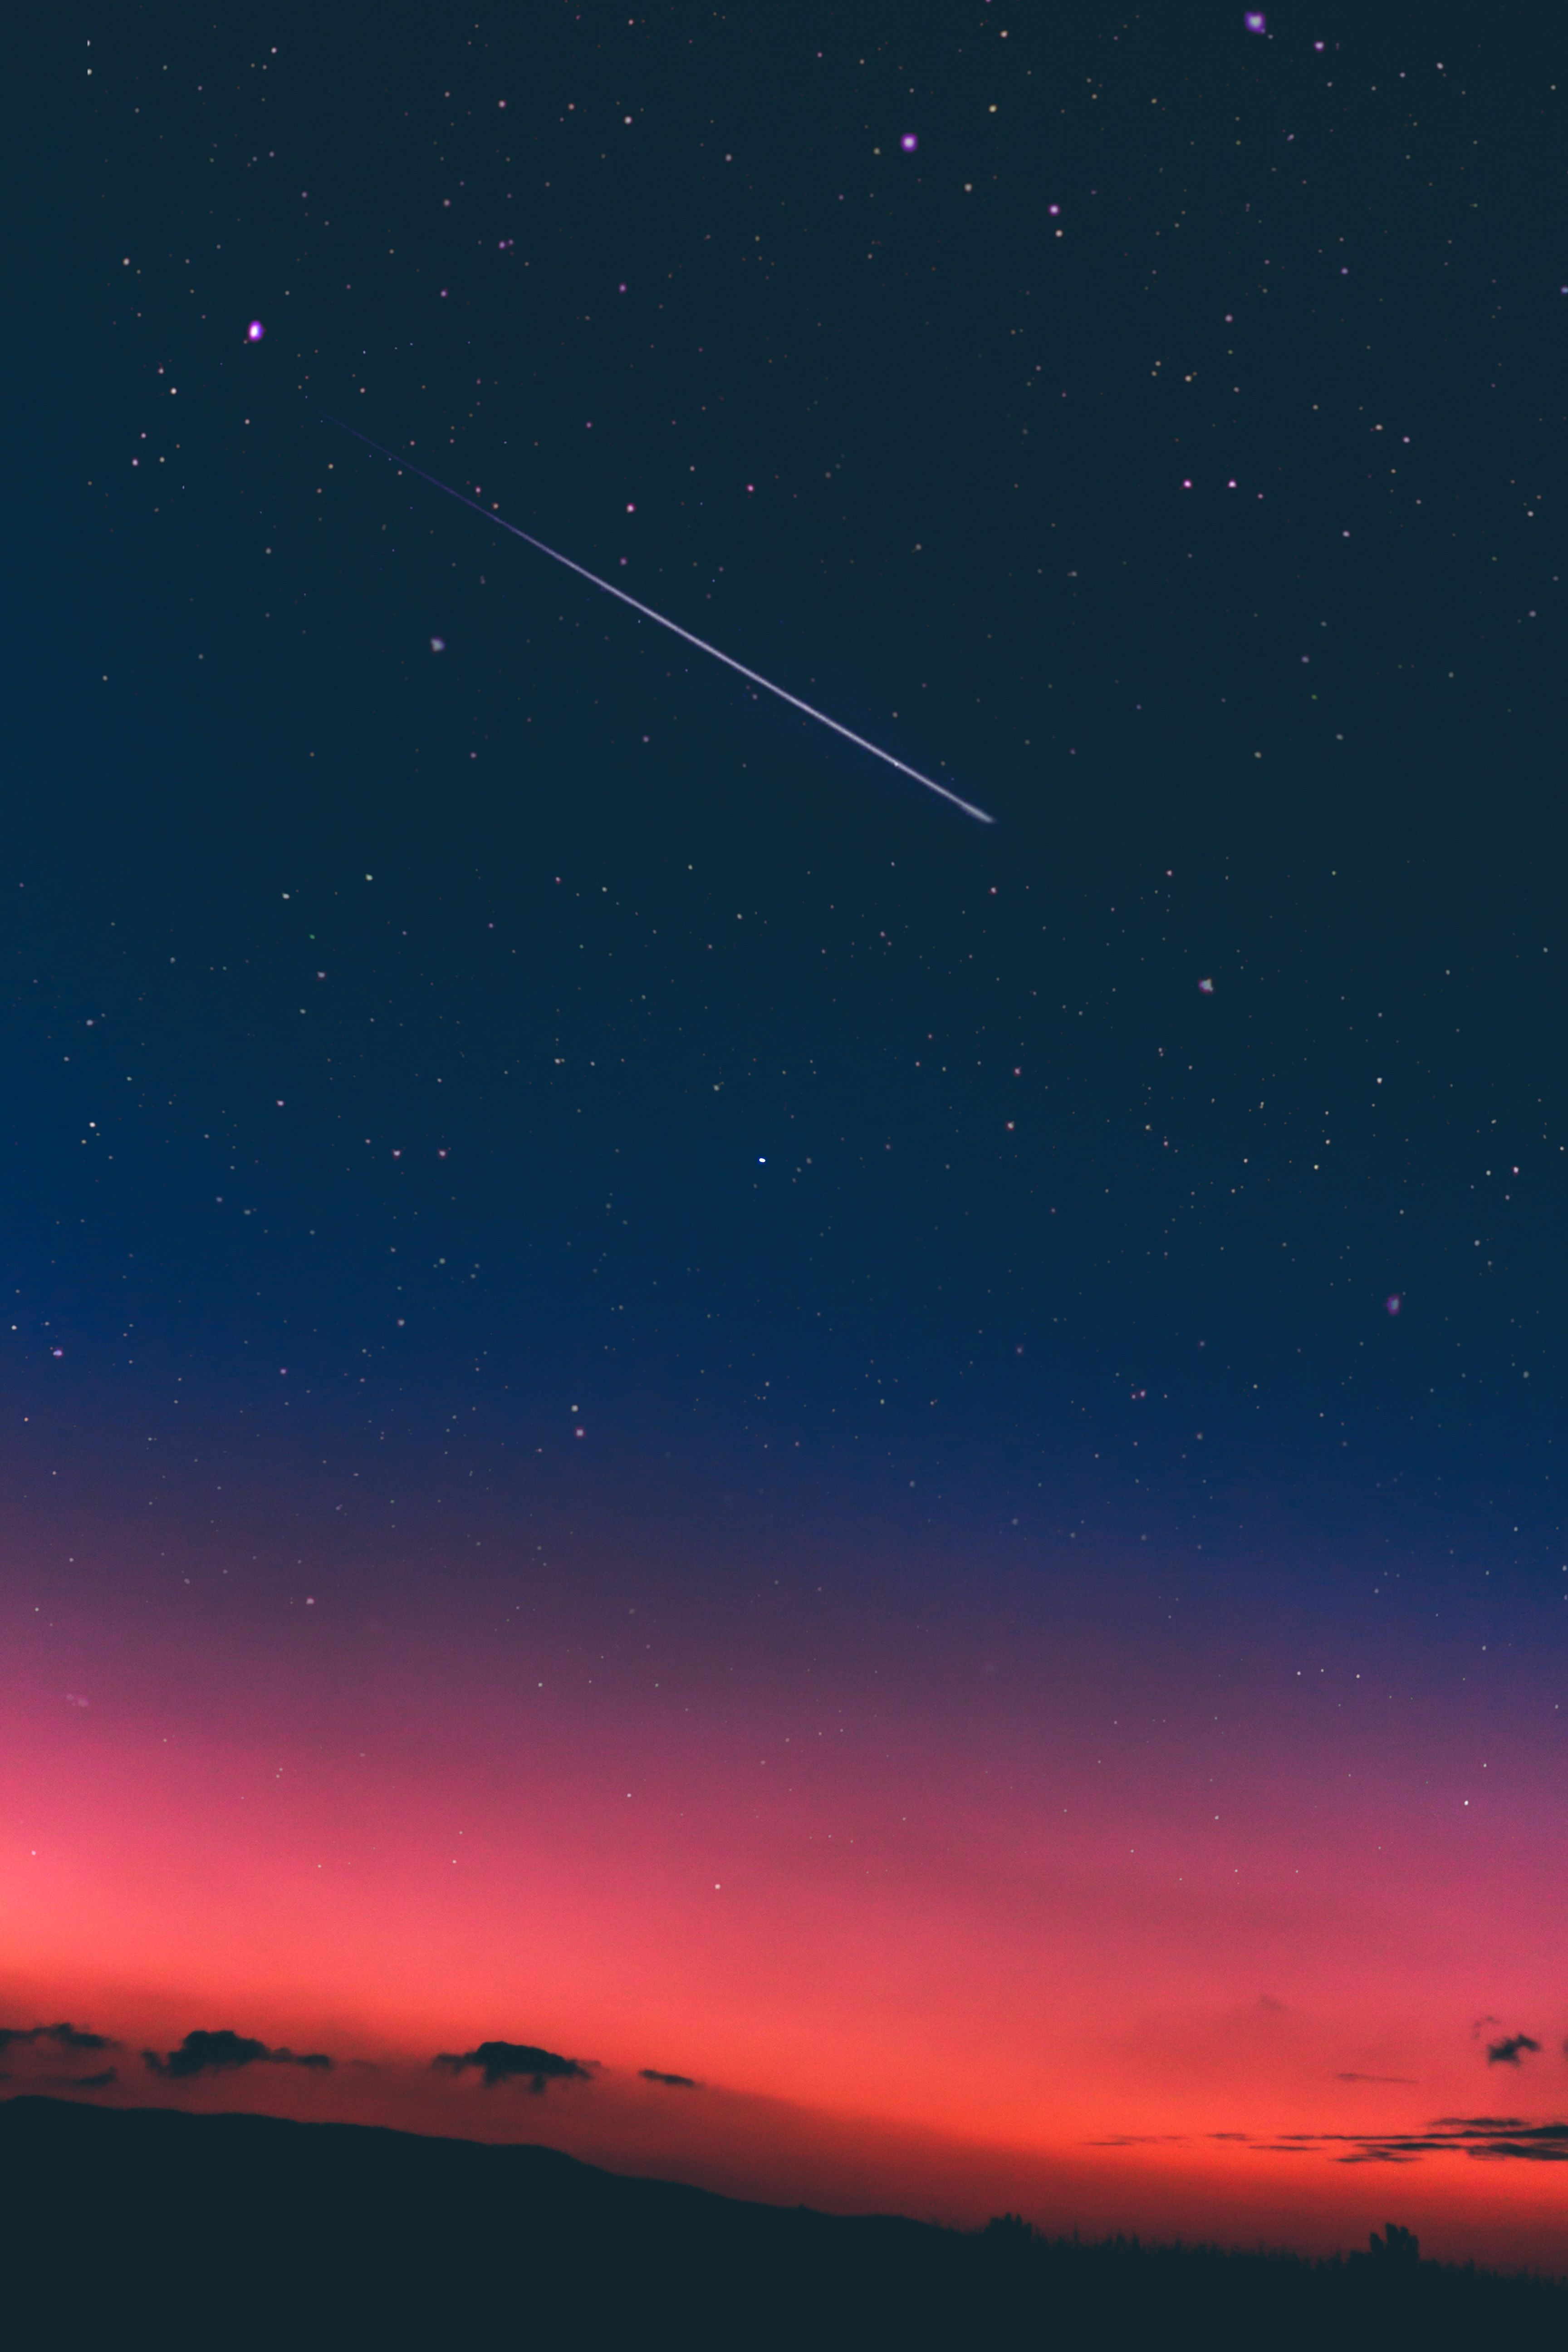 Night Sky With Shooting Star Tags Pink Blue Deep Sunset Comet Stars Starry High Resolution Night Sky Photos Night Sky Wallpaper Shooting Stars